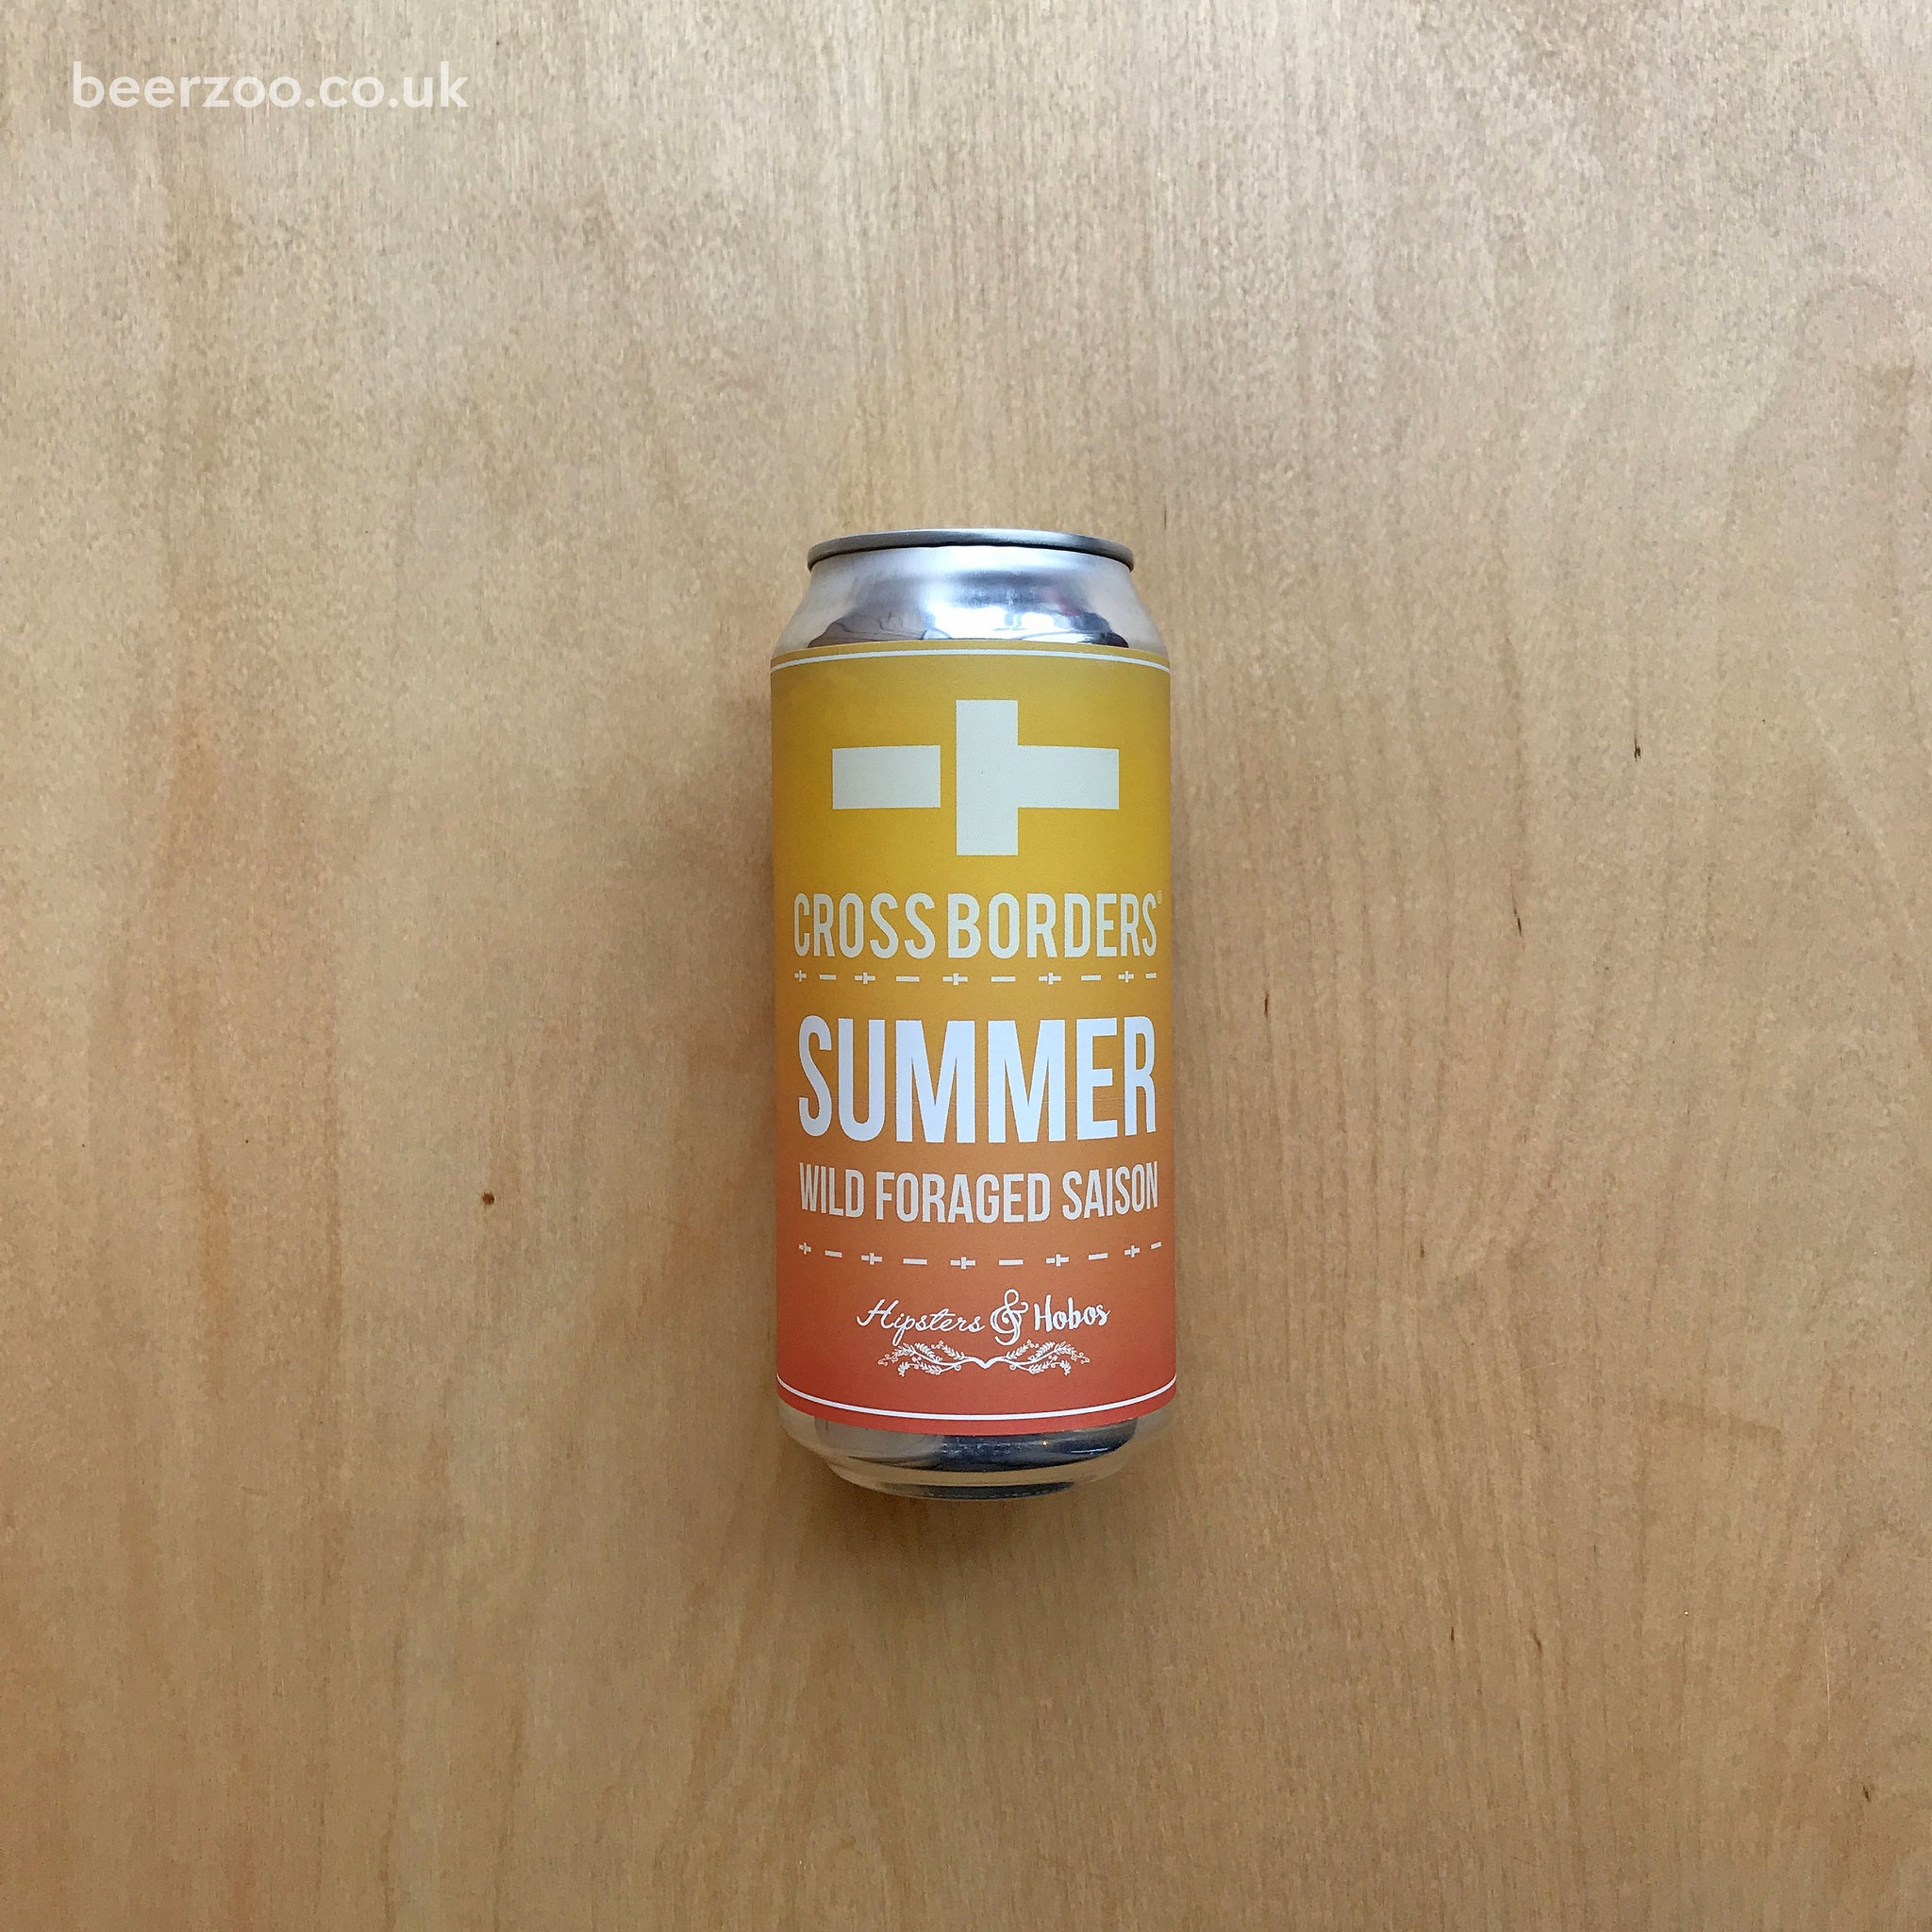 Cross Borders Summer 5% (440ml)